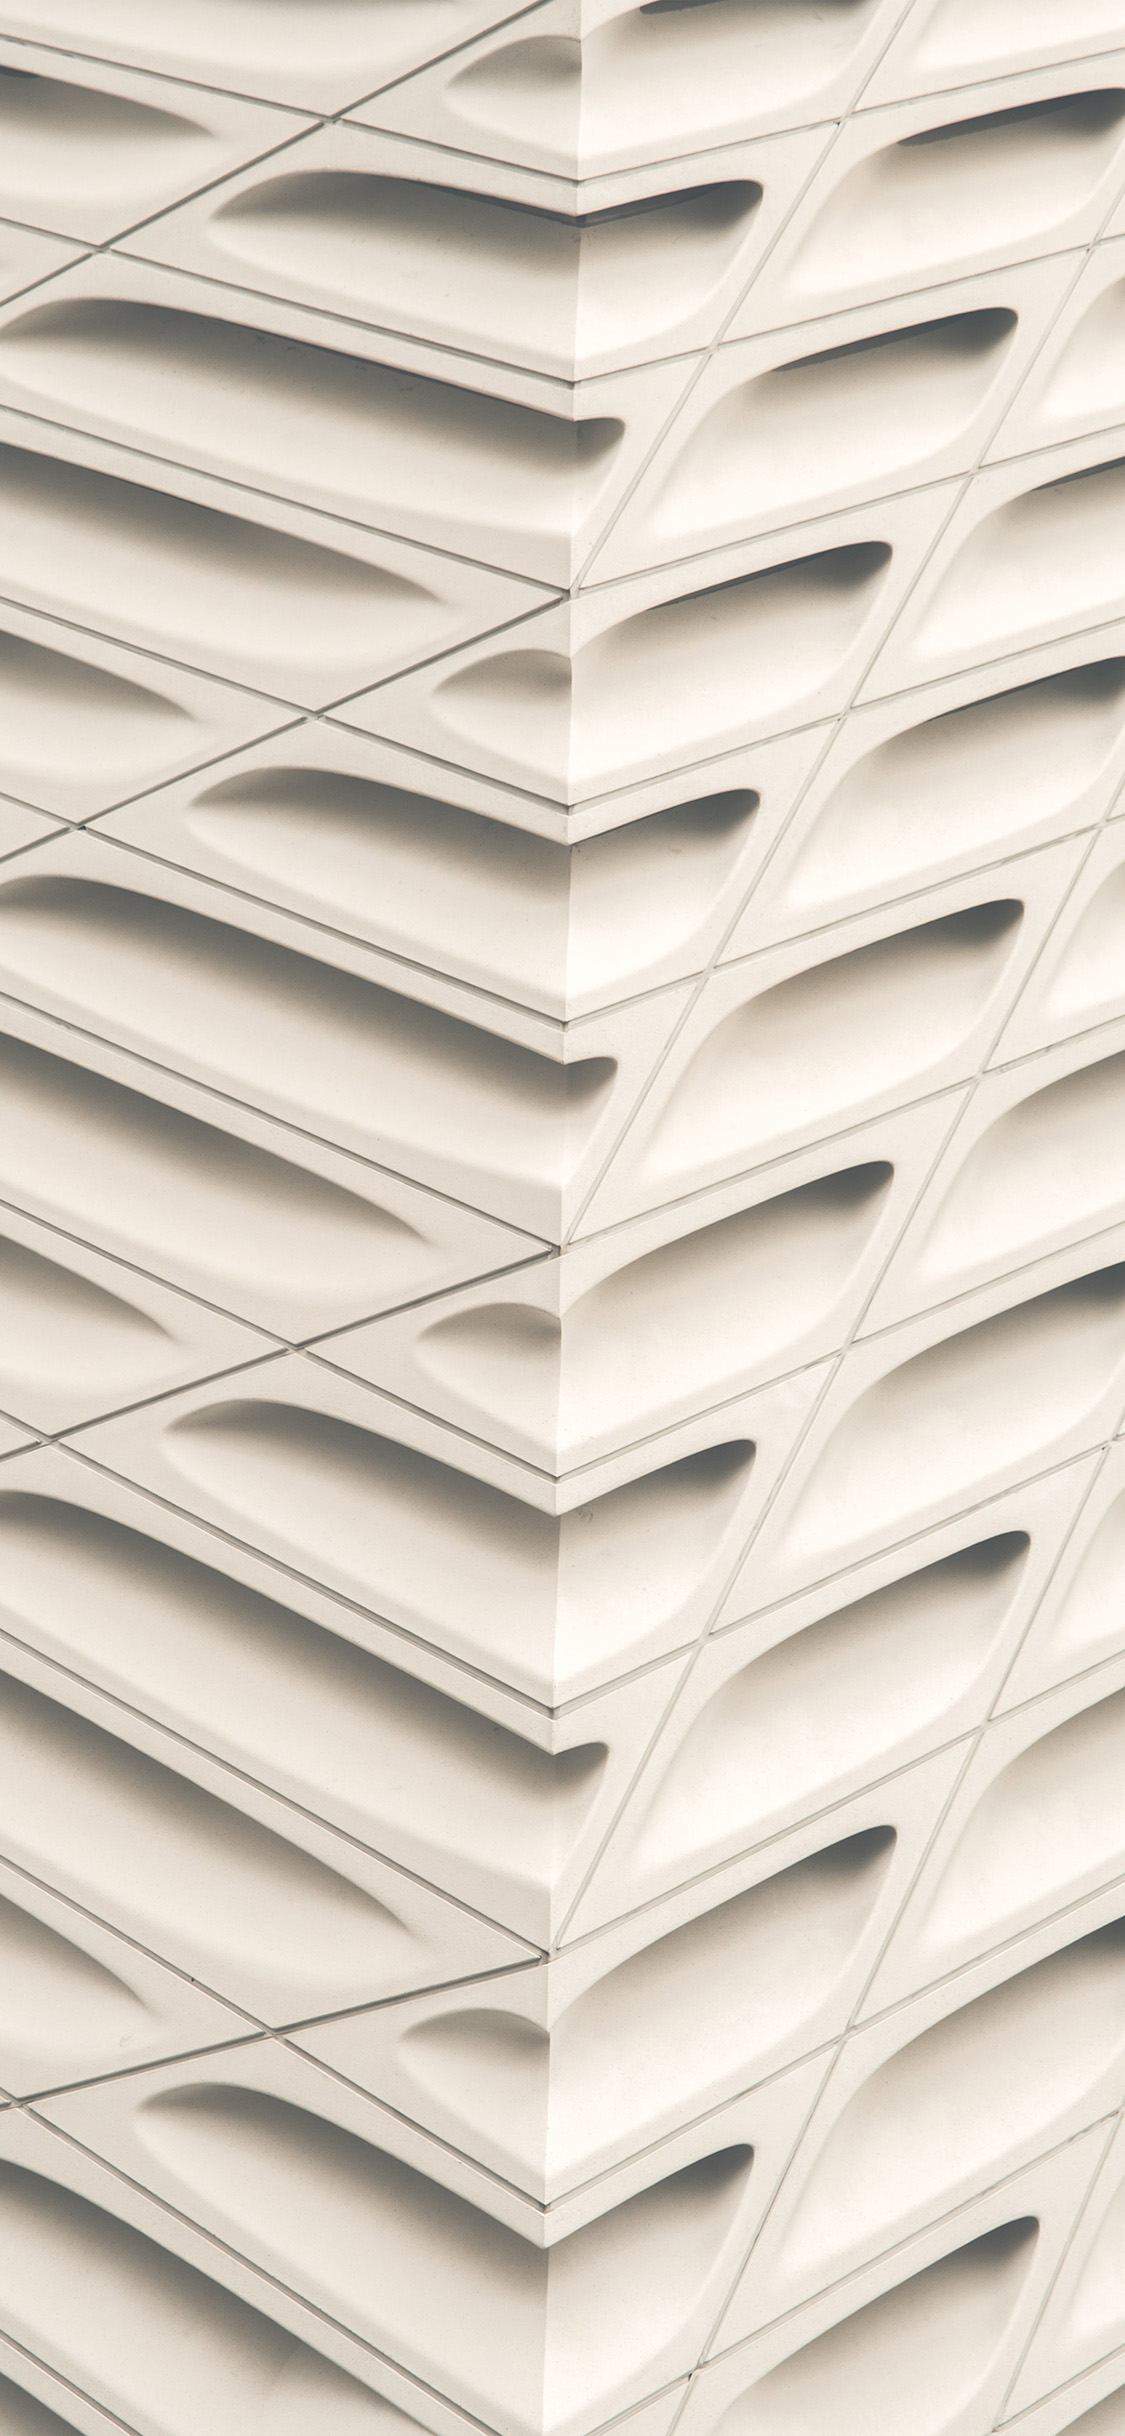 iPhonexpapers.com-Apple-iPhone-wallpaper-wa35-city-architecture-hole-pattern-background